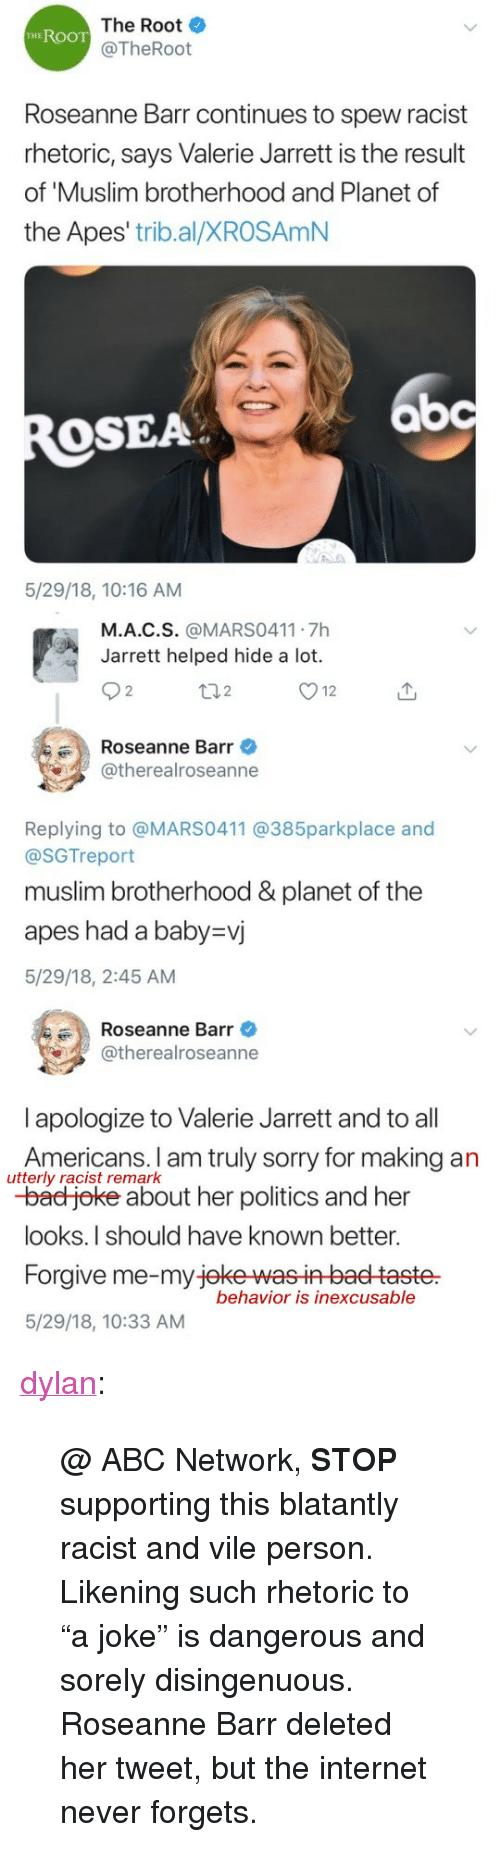 """disingenuous: The Root  @TheRoot  HEROOT  Roseanne Barr continues to spew racist  rhetoric, says Valerie Jarrett is the result  of 'Muslim brotherhood and Planet of  the Apes' trib.al/XROSAmN  bc  OSEA  5/29/18, 10:16 AM   M.A.C.S. @MARS0411 7h  Jarrett helped hide a lot.  2  2  Roseanne Barr  @therealroseanne  Replying to @MARS0411 @385parkplace and  @SGTreport  muslim brotherhood &planet of the  apes had a baby-vj  5/29/18, 2:45 AM   Roseanne Barr  @therealroseanne  l apologize to Valerie Jarrett and to all  Americans. I am truly sorry for making an  -bad joke about her politics and her  looks.I should have known better.  Forgive me-my jeke wasin baet taste  5/29/18, 10:33 AM  utterly racist remark  behavior is inexcusable <p><a href=""""https://dylan.tumblr.com/post/174371828198/abc-network-stop-supporting-this-blatantly"""" class=""""tumblr_blog"""">dylan</a>:</p><blockquote> <p>@ ABC Network, <b>STOP</b> supporting this blatantly racist and vile person.</p> <p>Likening such rhetoric to """"a joke"""" is dangerous and sorely disingenuous.</p> <p>Roseanne Barr deleted her tweet, but the internet never forgets.</p> </blockquote>"""